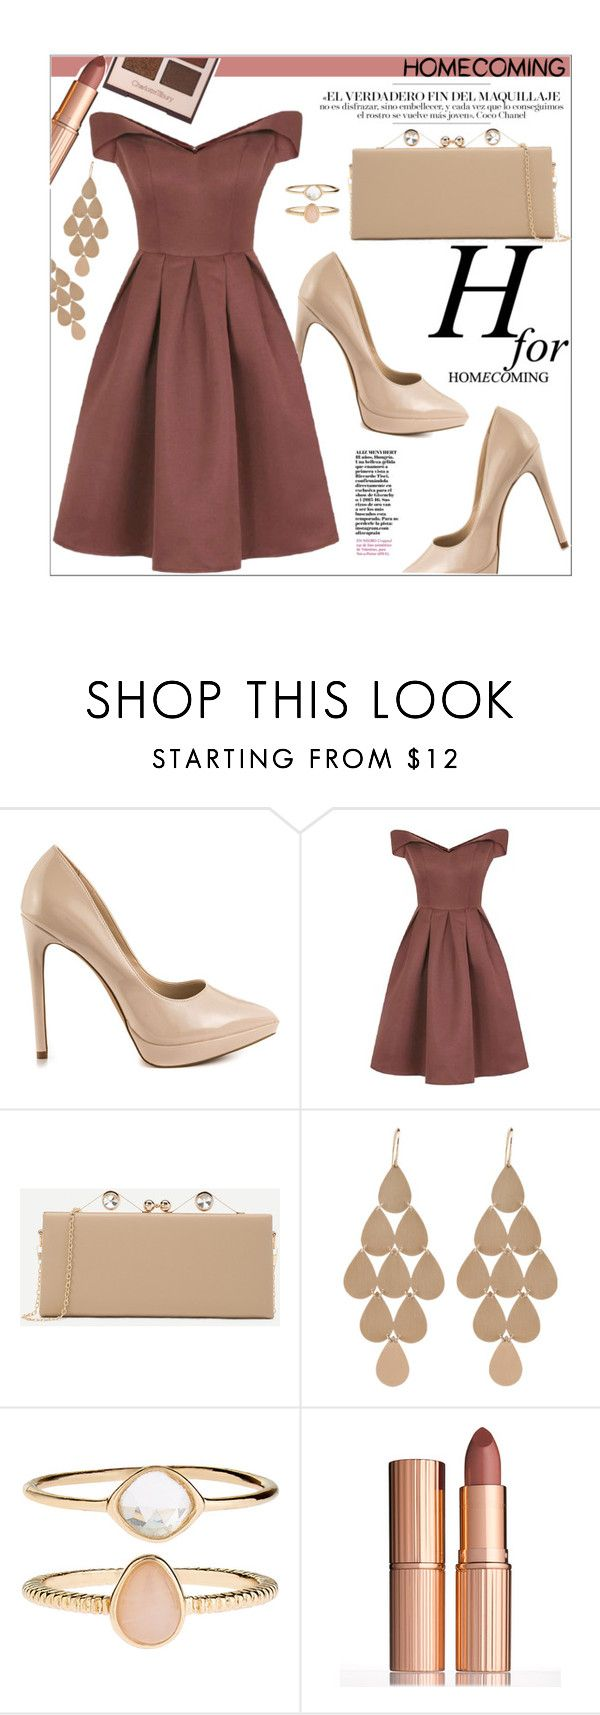 """""""Homecoming"""" by castelli ❤ liked on Polyvore featuring ALDO, Chi Chi, Irene Neuwirth, Accessorize, Charlotte Tilbury and Homecoming"""